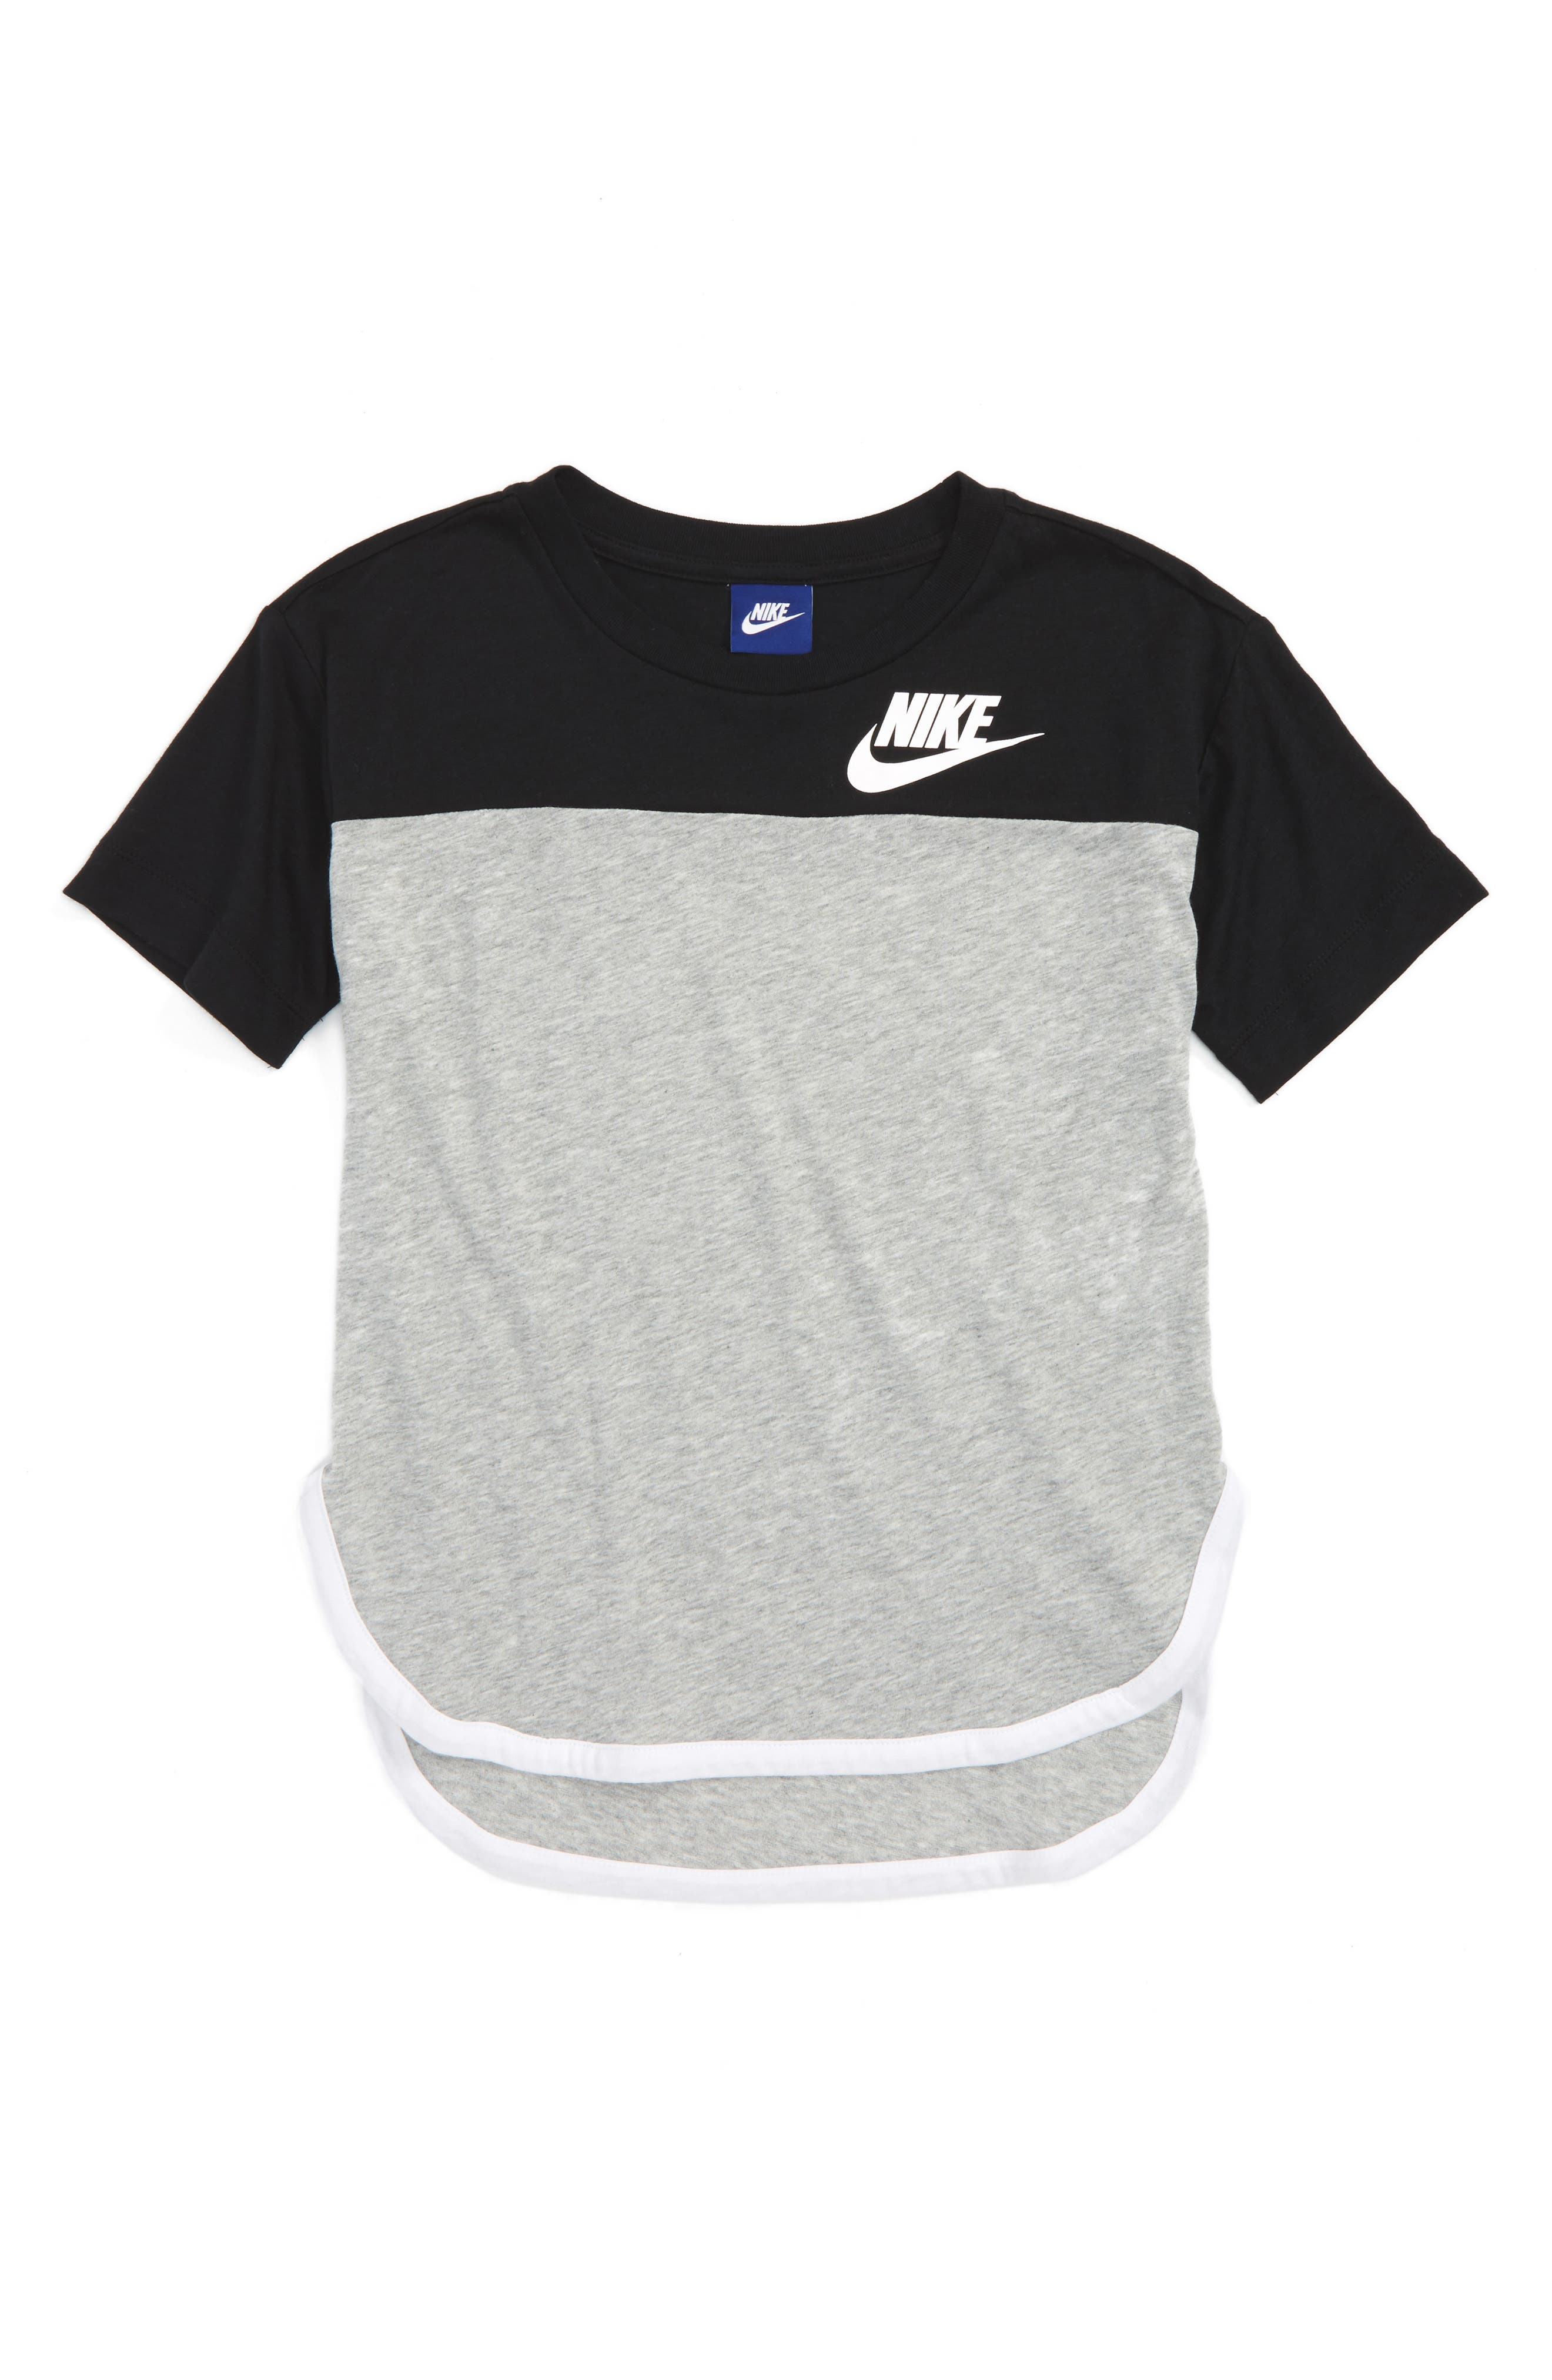 Sportswear Graphic Tee,                             Main thumbnail 1, color,                             Black/ Dk Grey Heather/ White